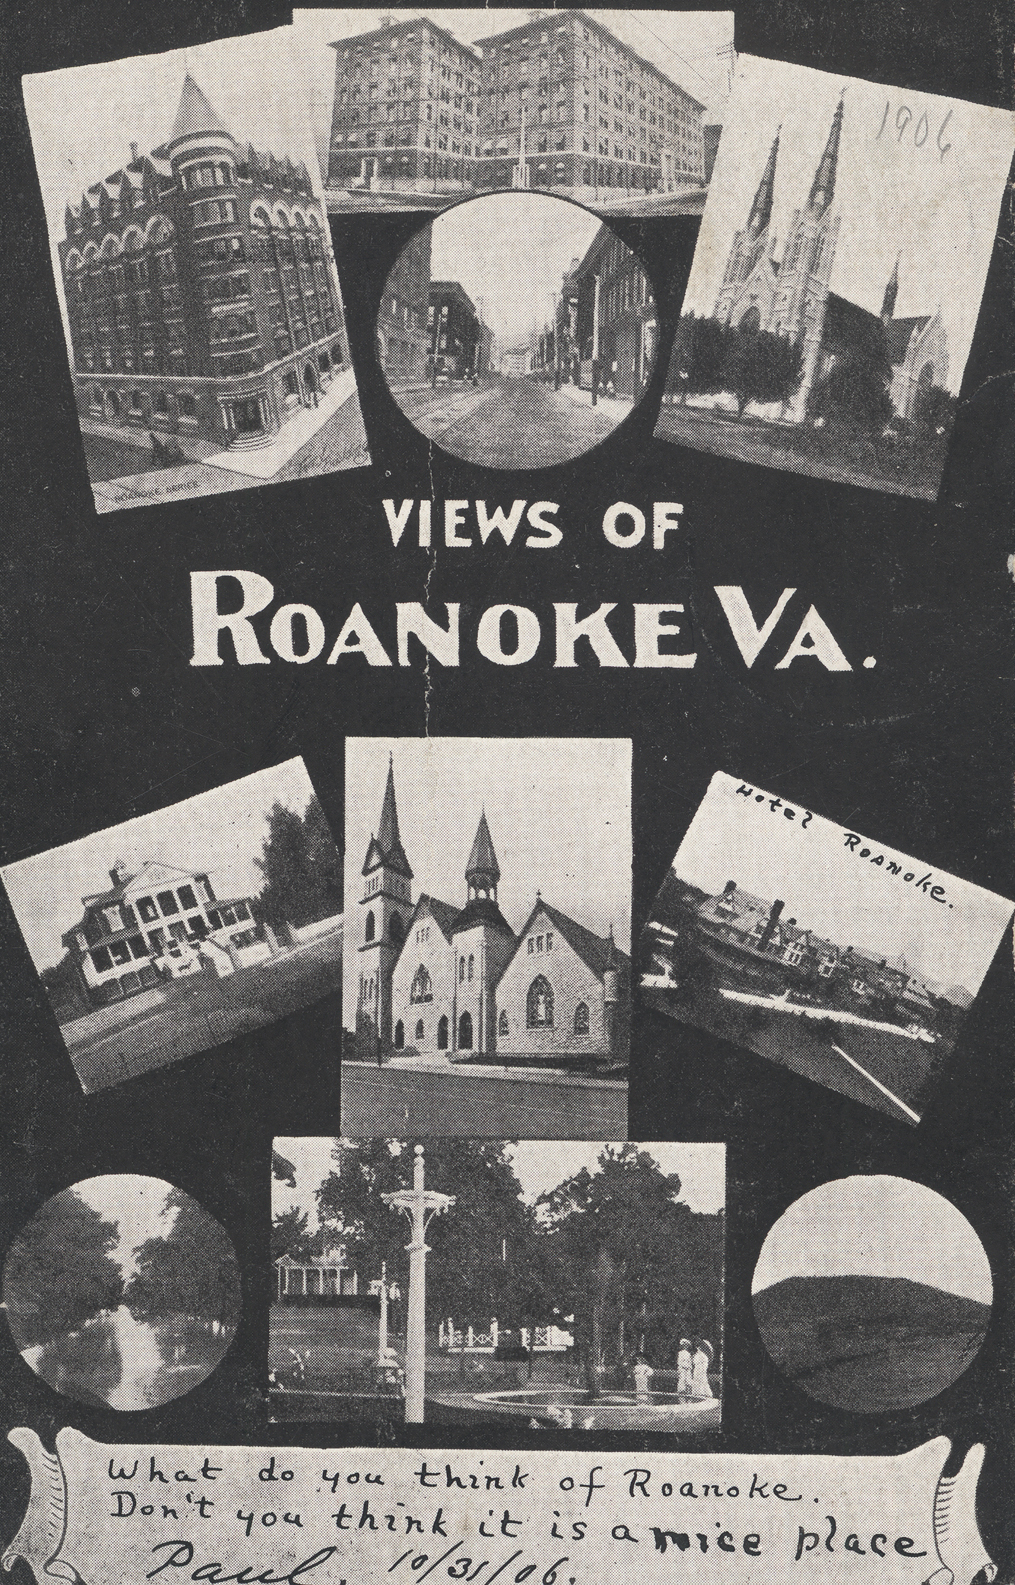 PC 132.0 Views of Roanoke.jpg